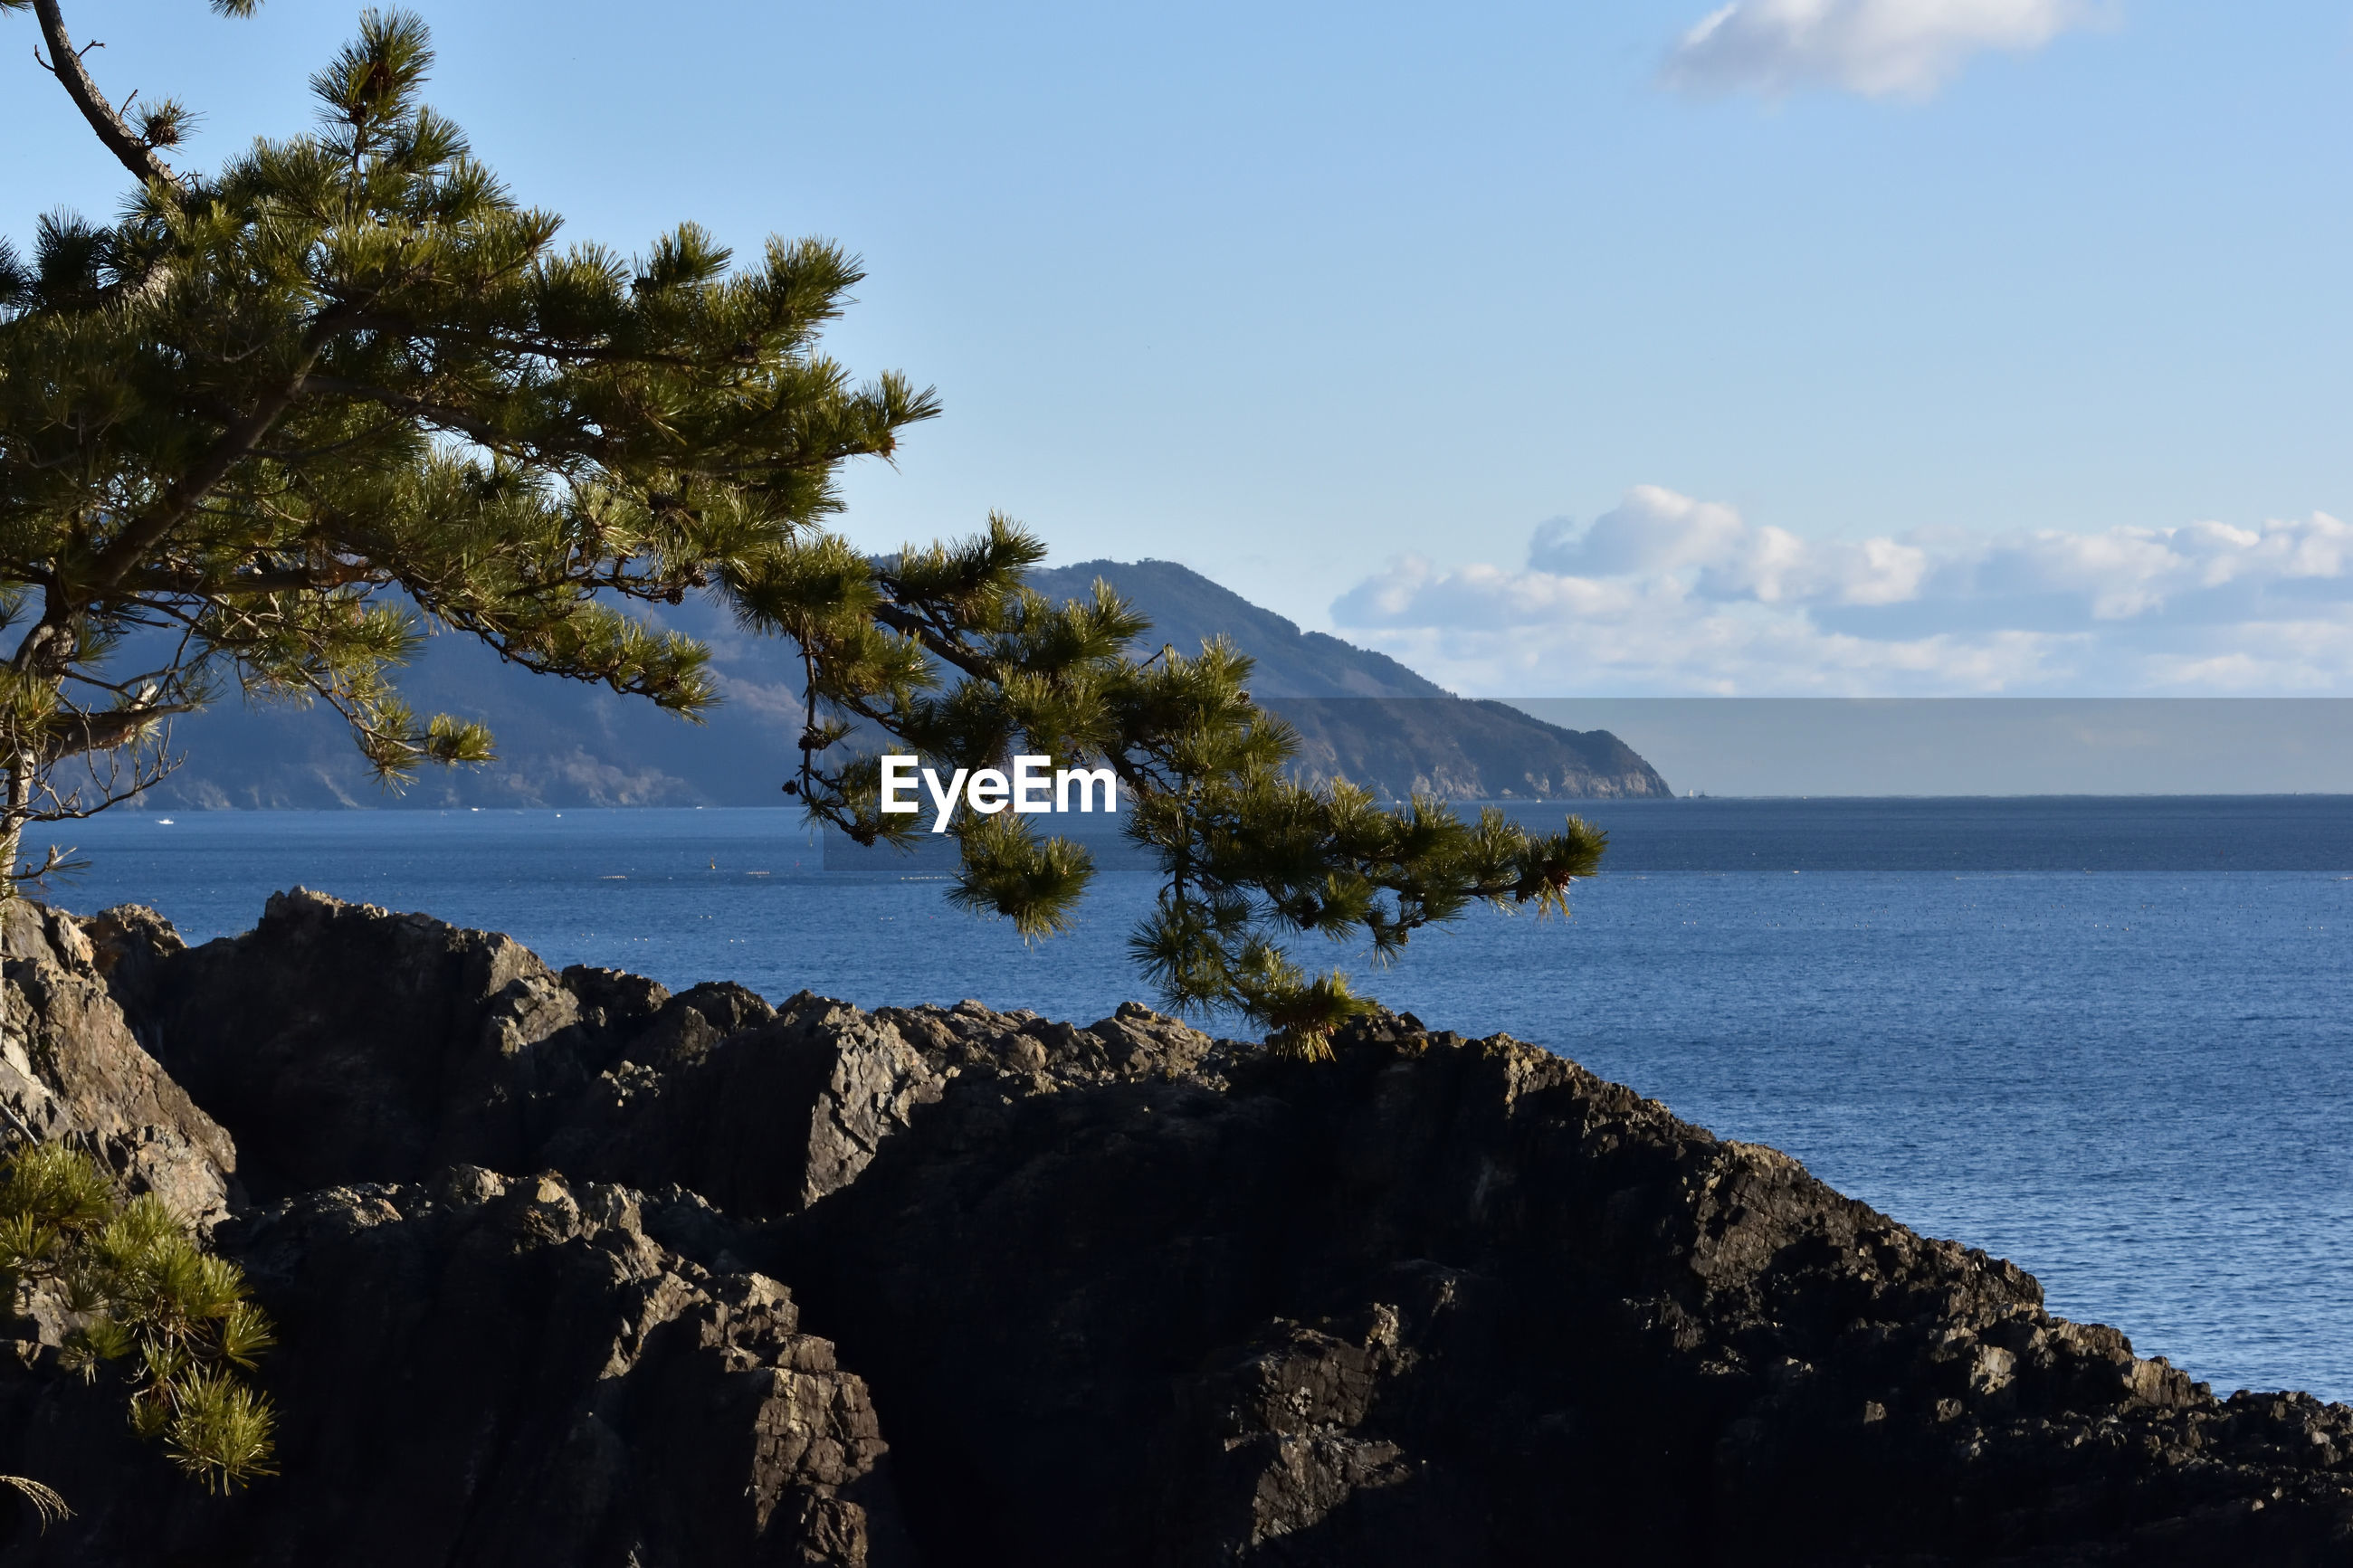 SCENIC VIEW OF SEA BY TREE MOUNTAIN AGAINST SKY